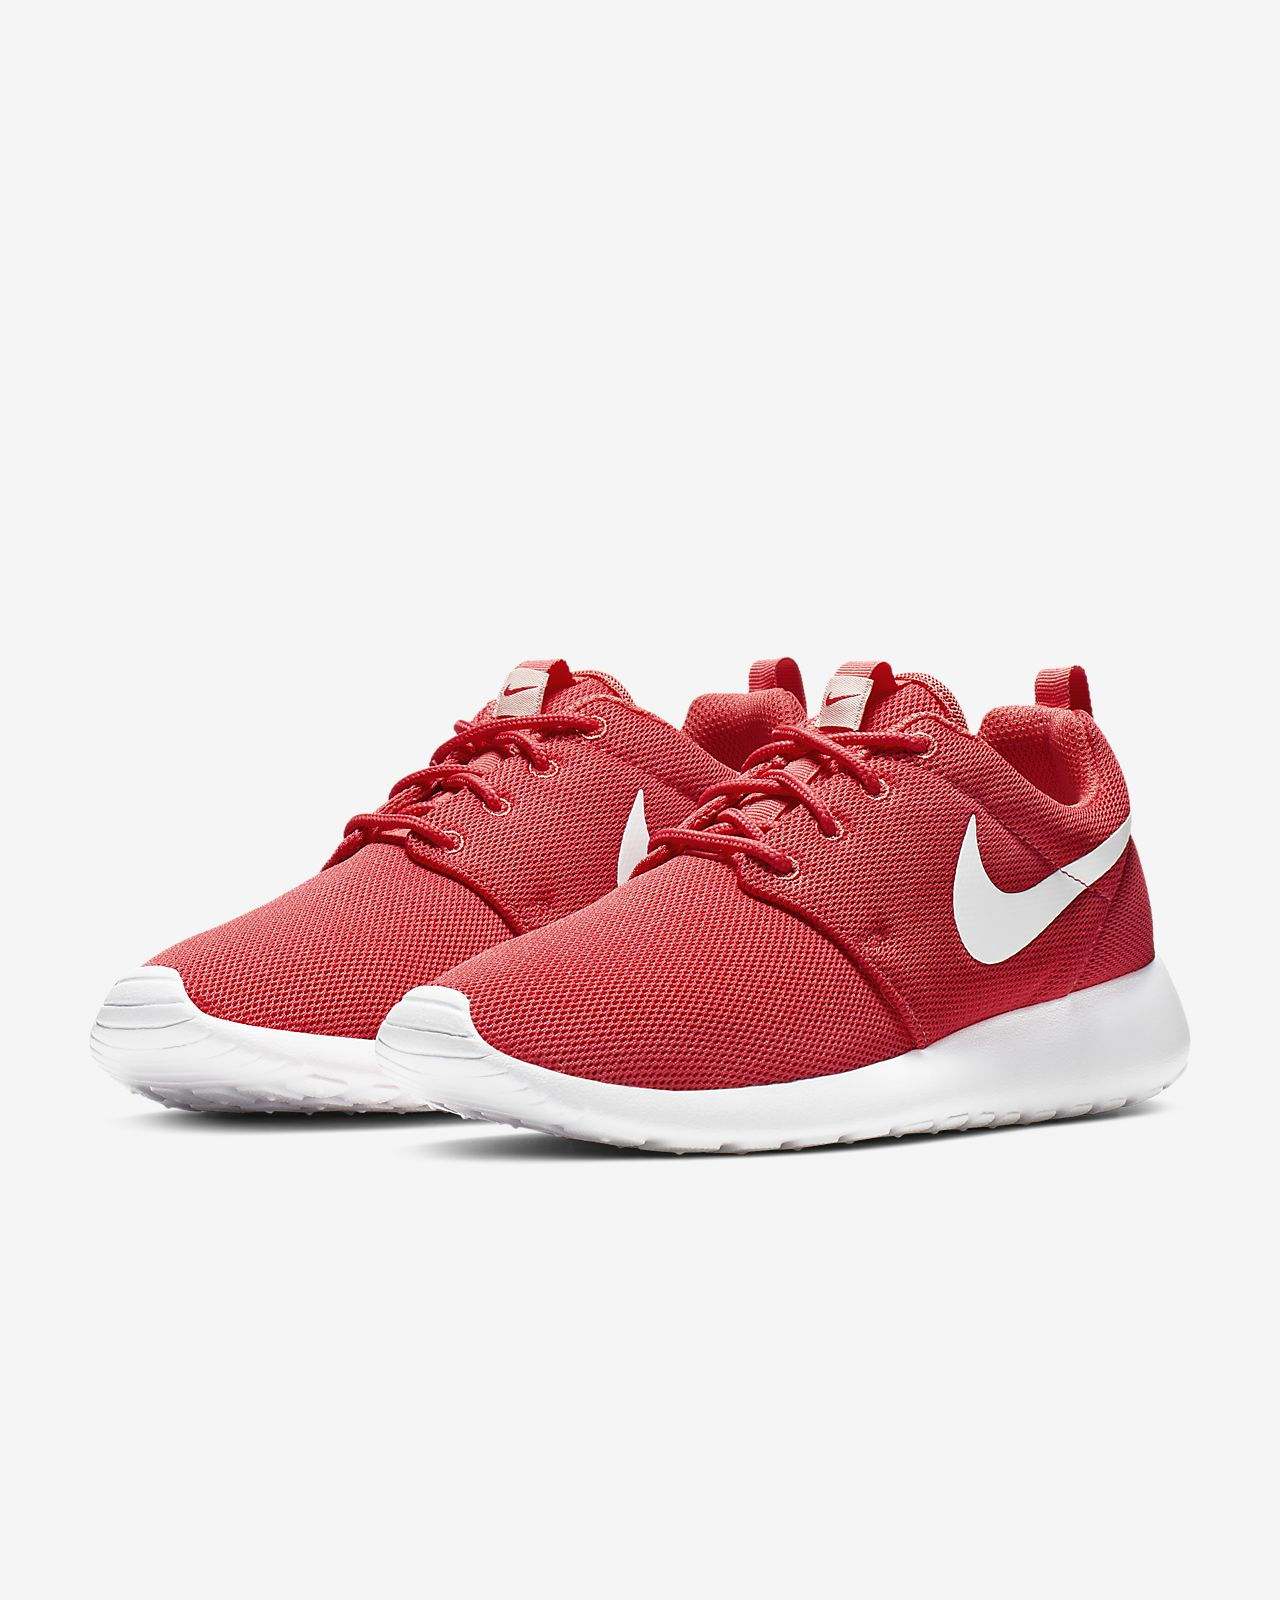 premium selection 04035 6c6fa ... Nike Roshe One Women s Shoe